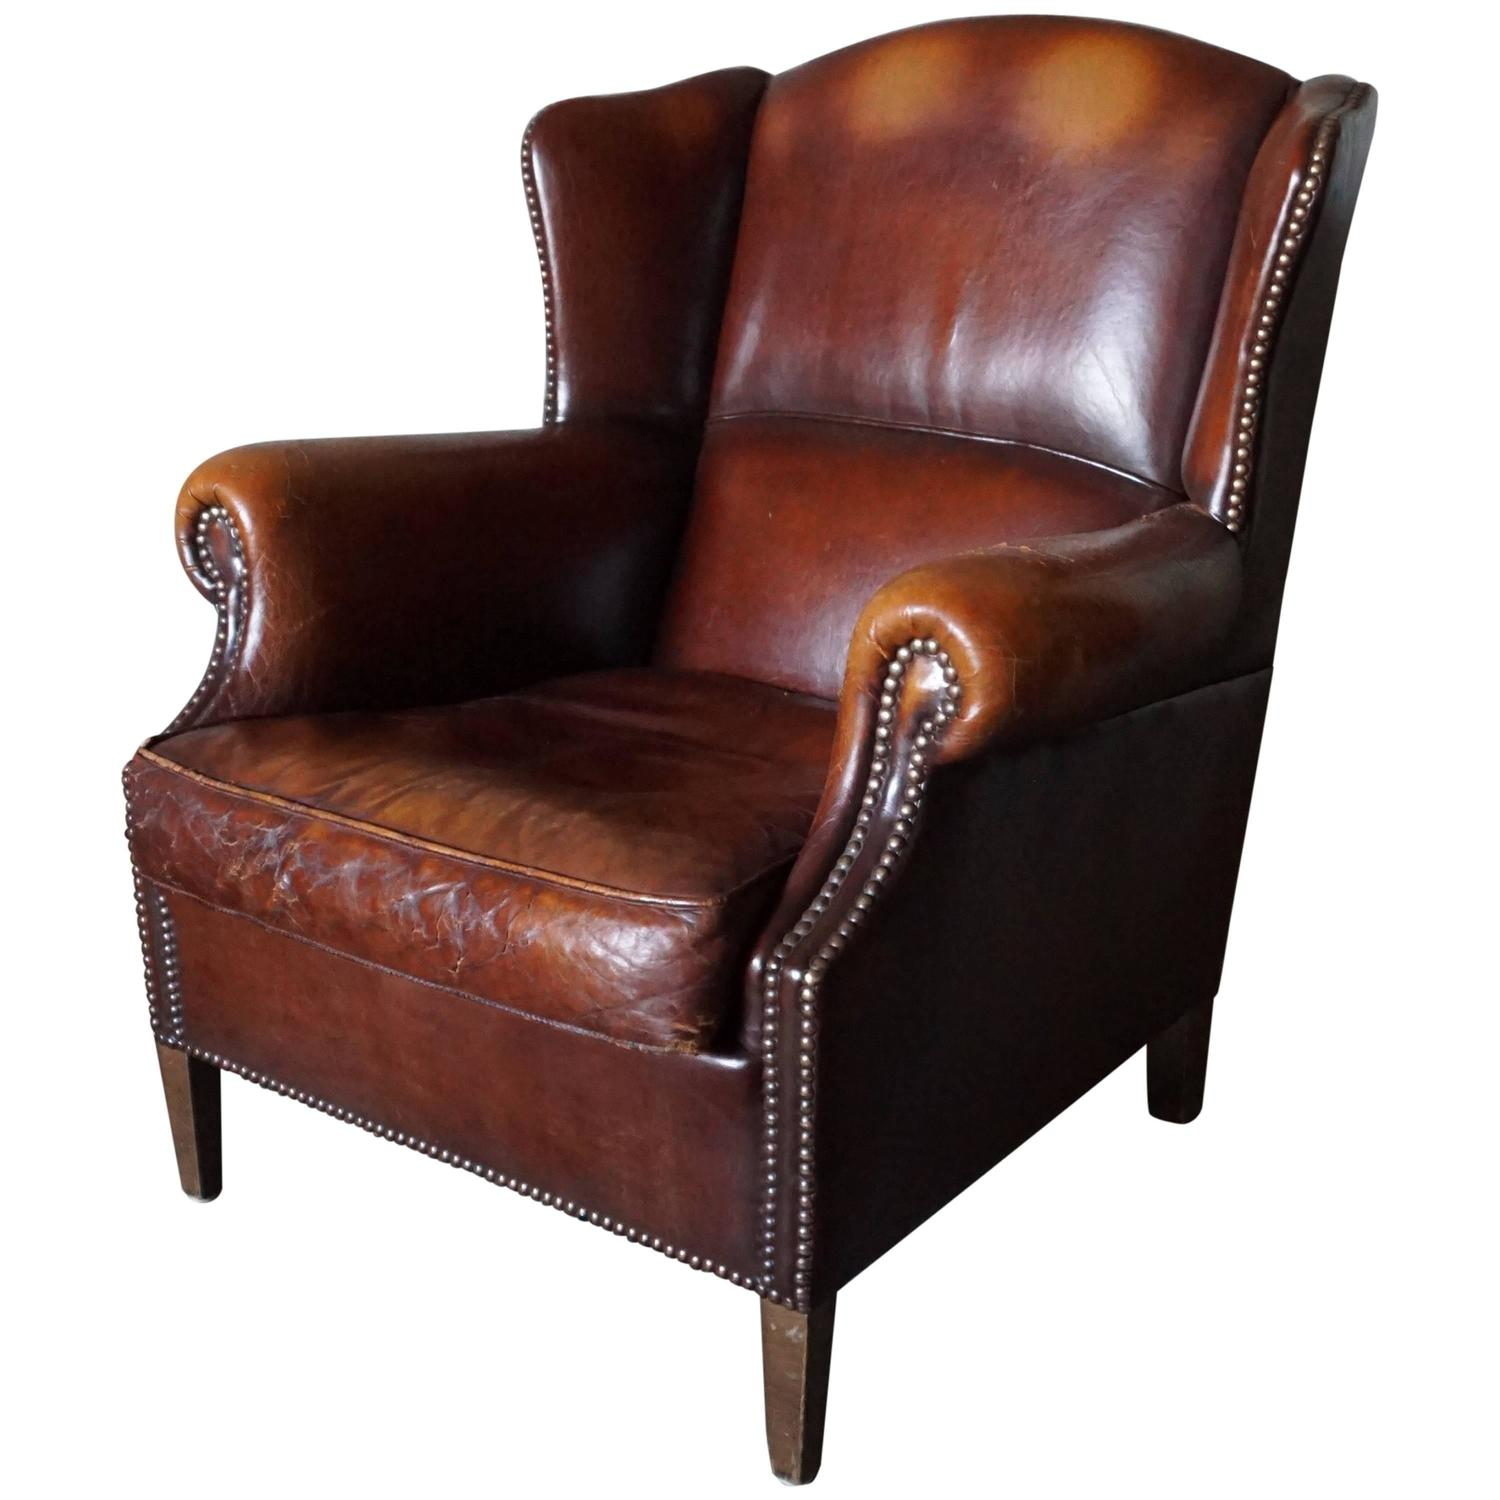 Vintage Club Chairs Vintage Leather Wing Chair Or Club Chair 1950s At 1stdibs